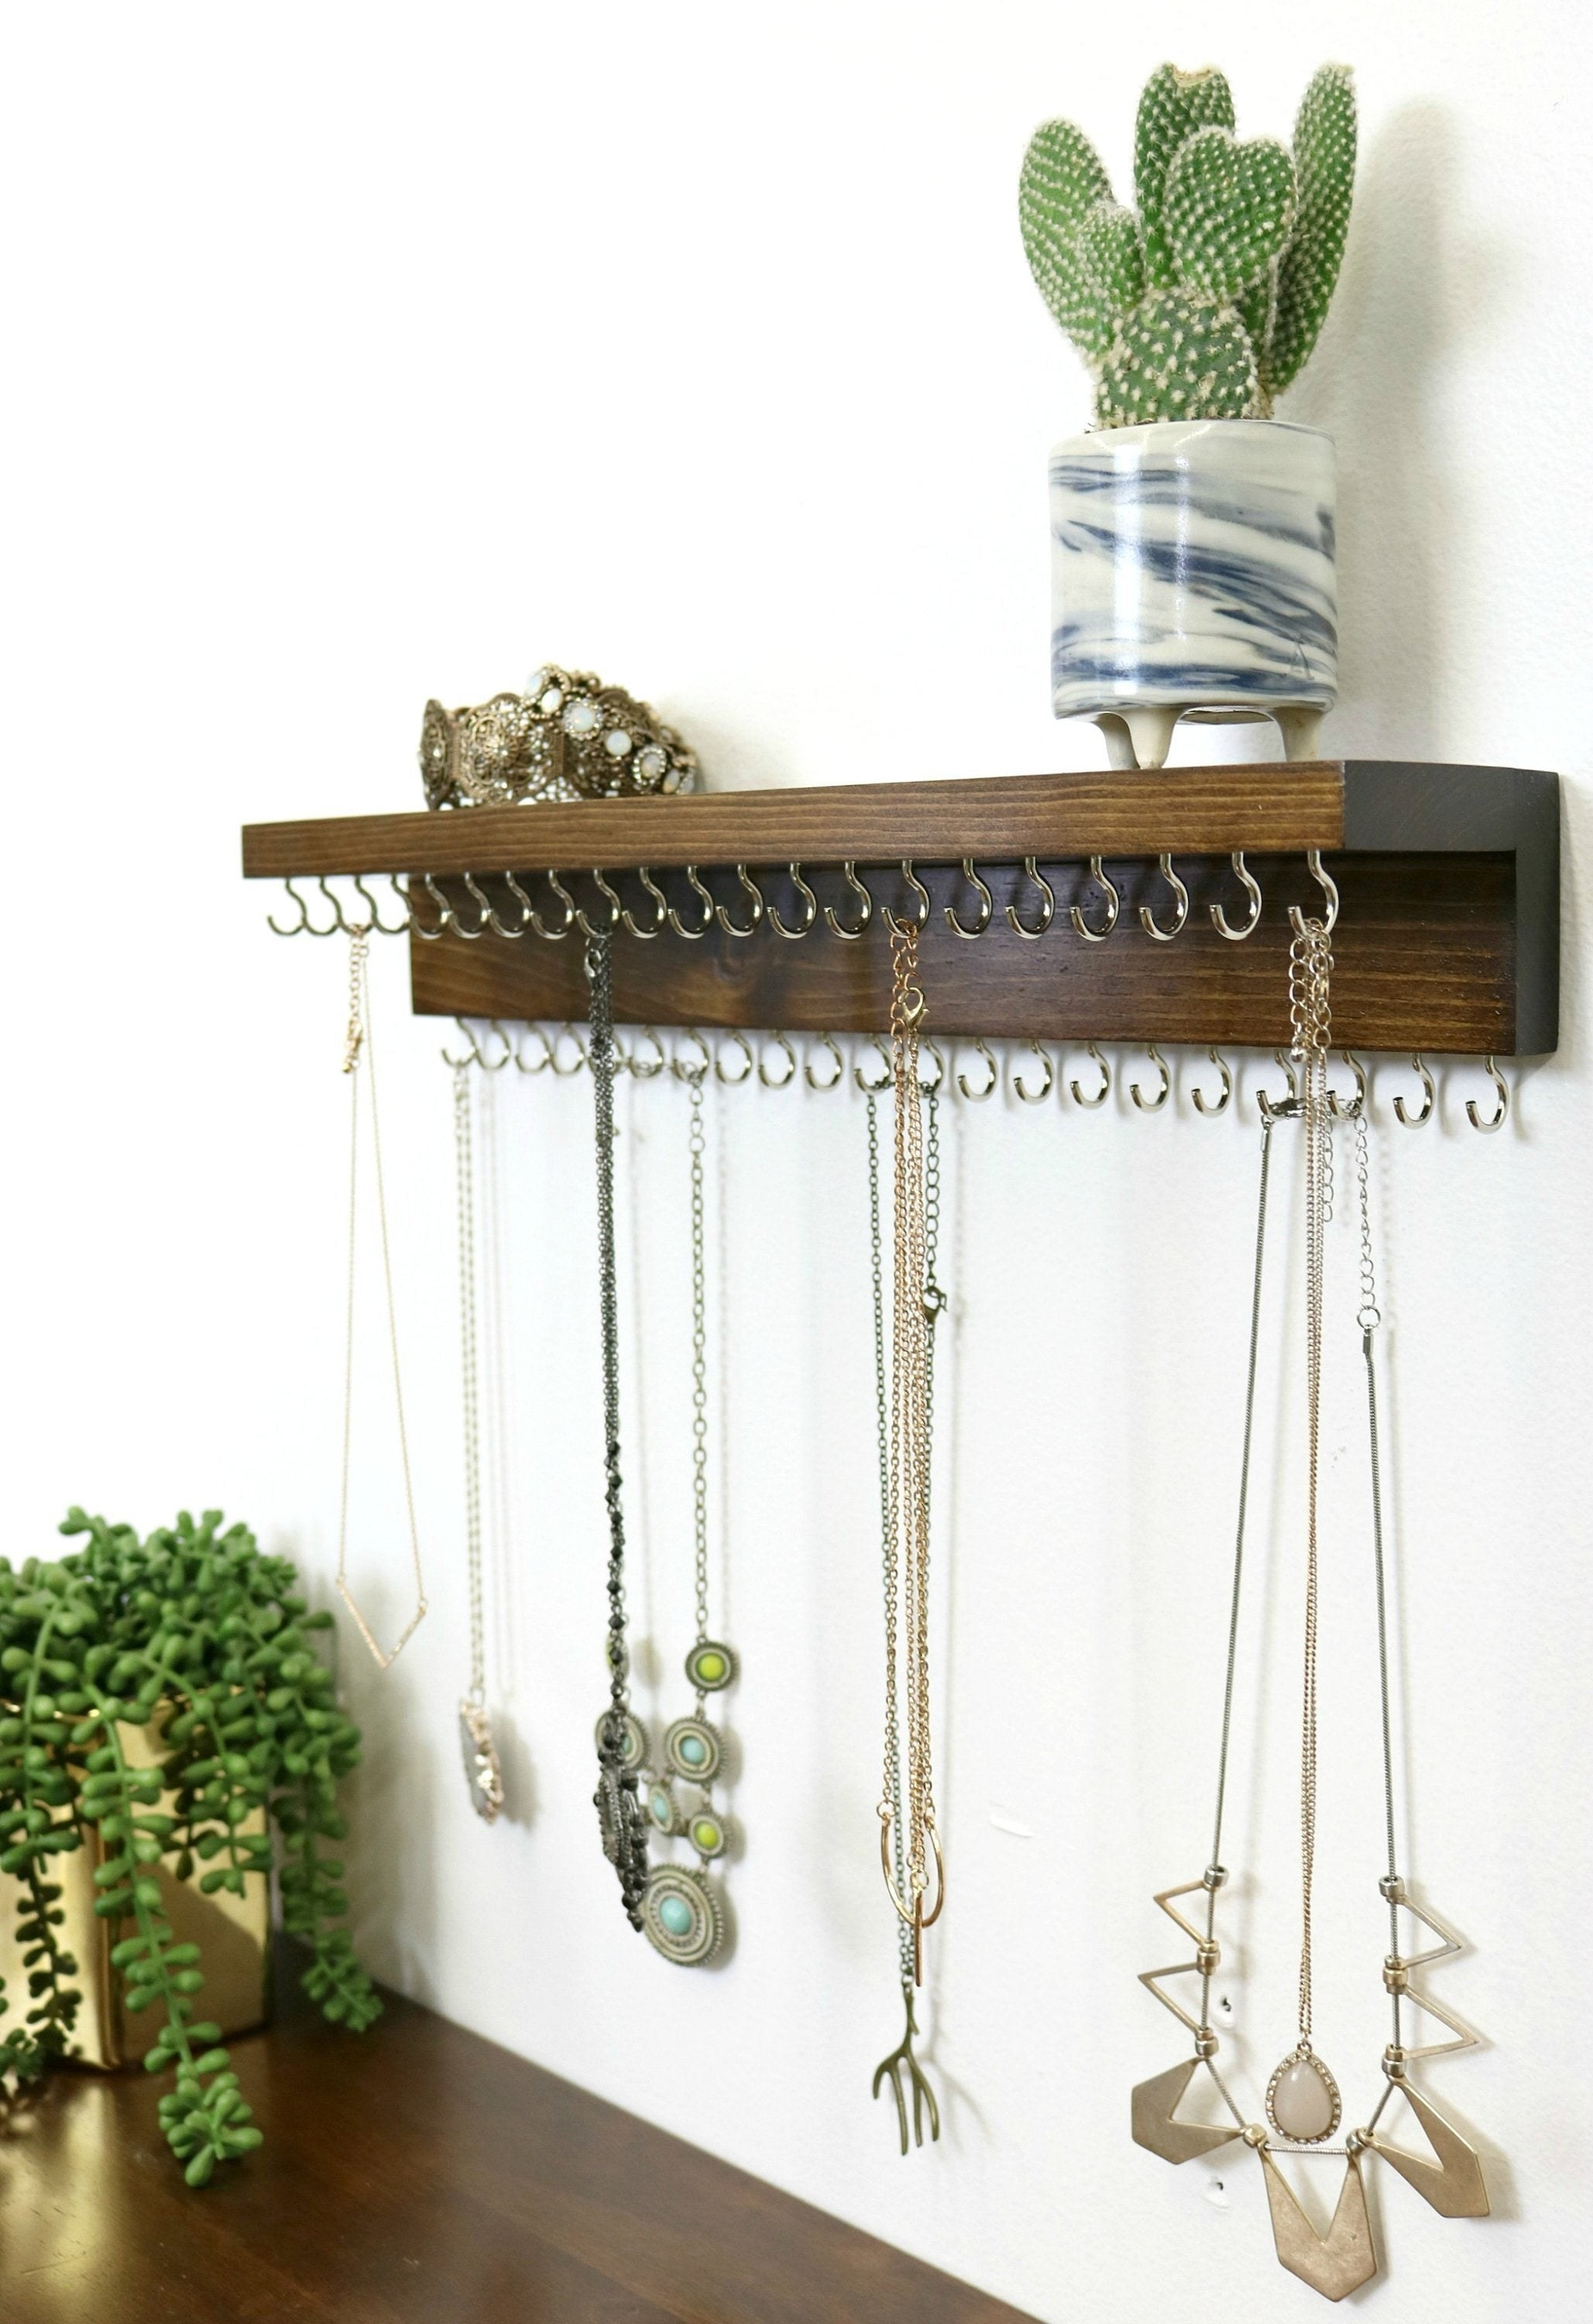 The jewelry organizer with necklaces on the hooks